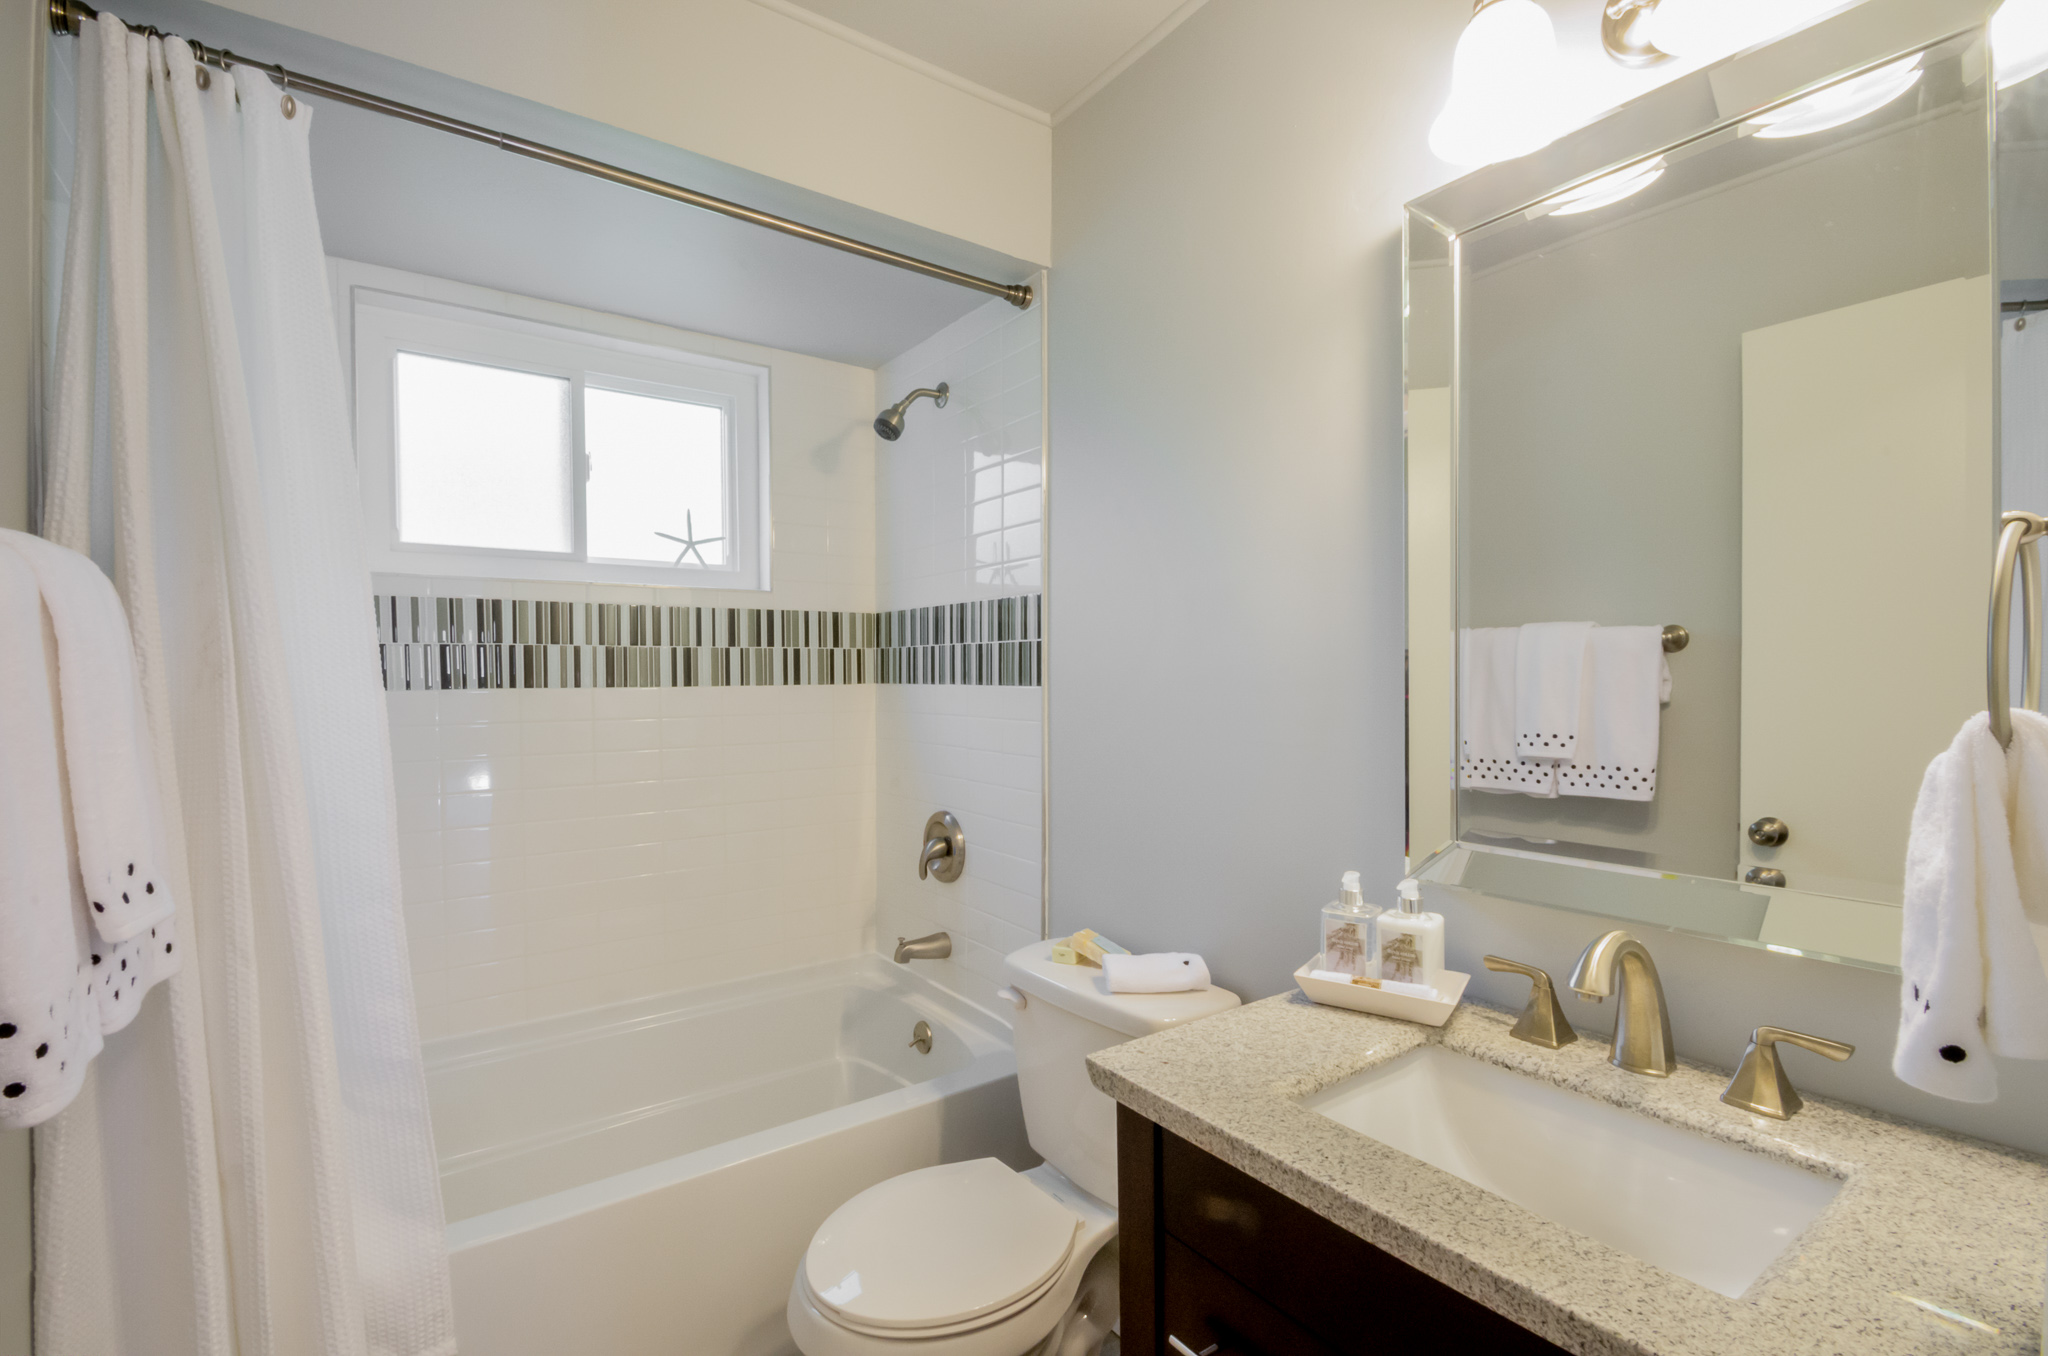 Grandview Bathroom After with white subway tile, soaking tub, new toilet, vanity, and fixtures.